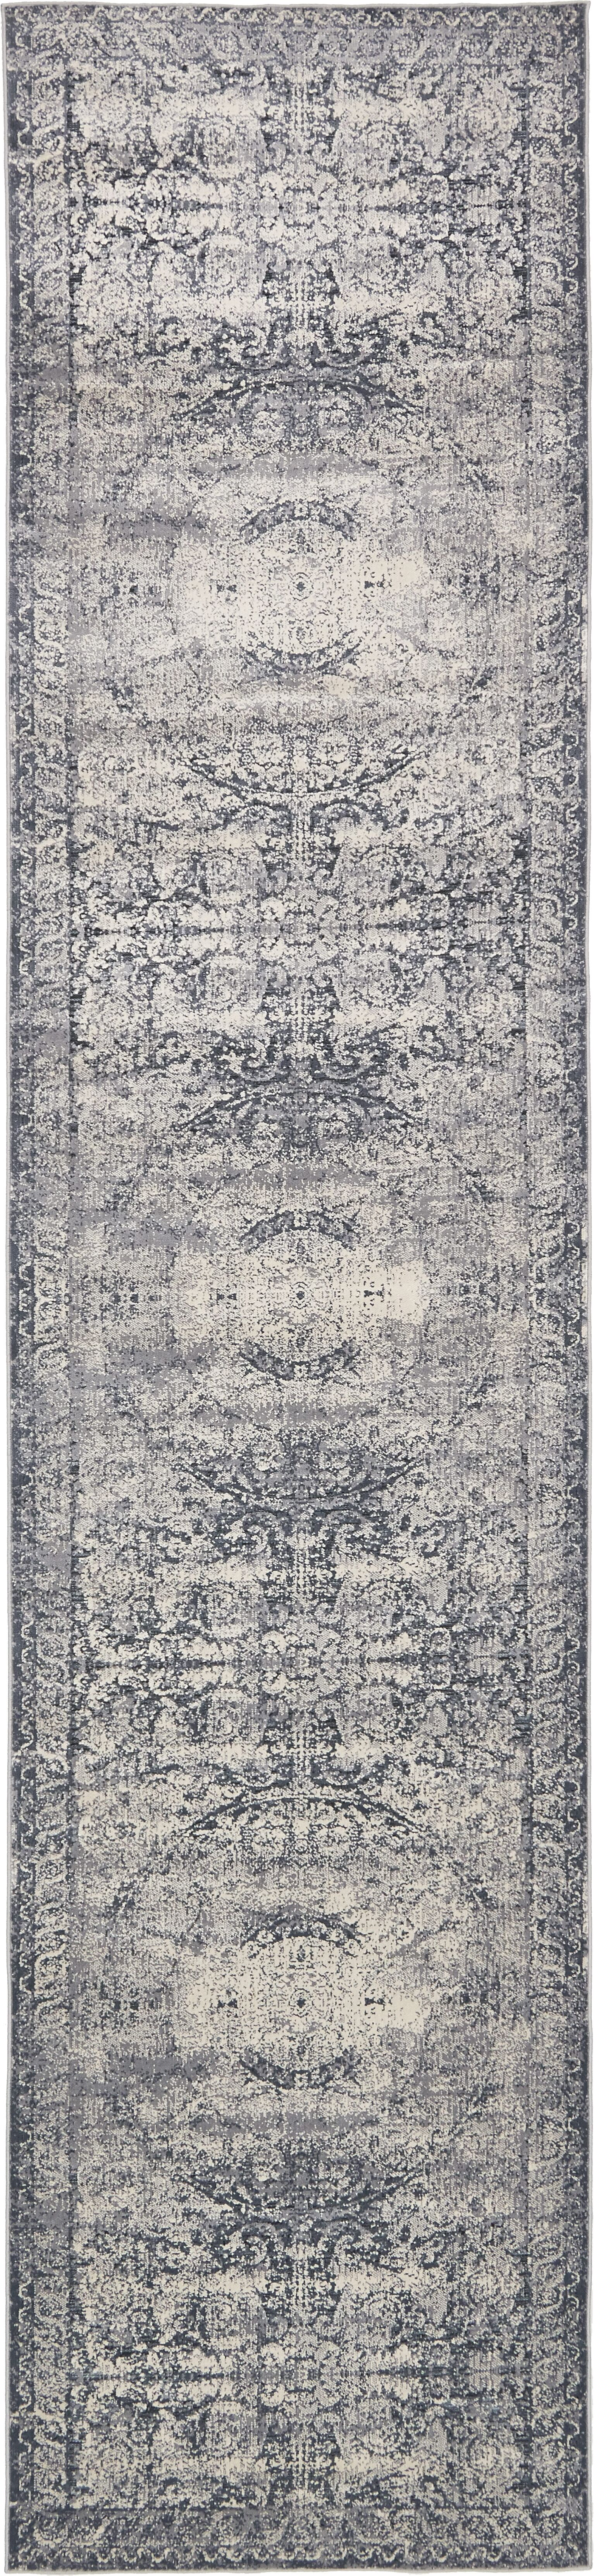 Abbeville Stone Blue Area Rug Rug Size: Runner 3' x 13'